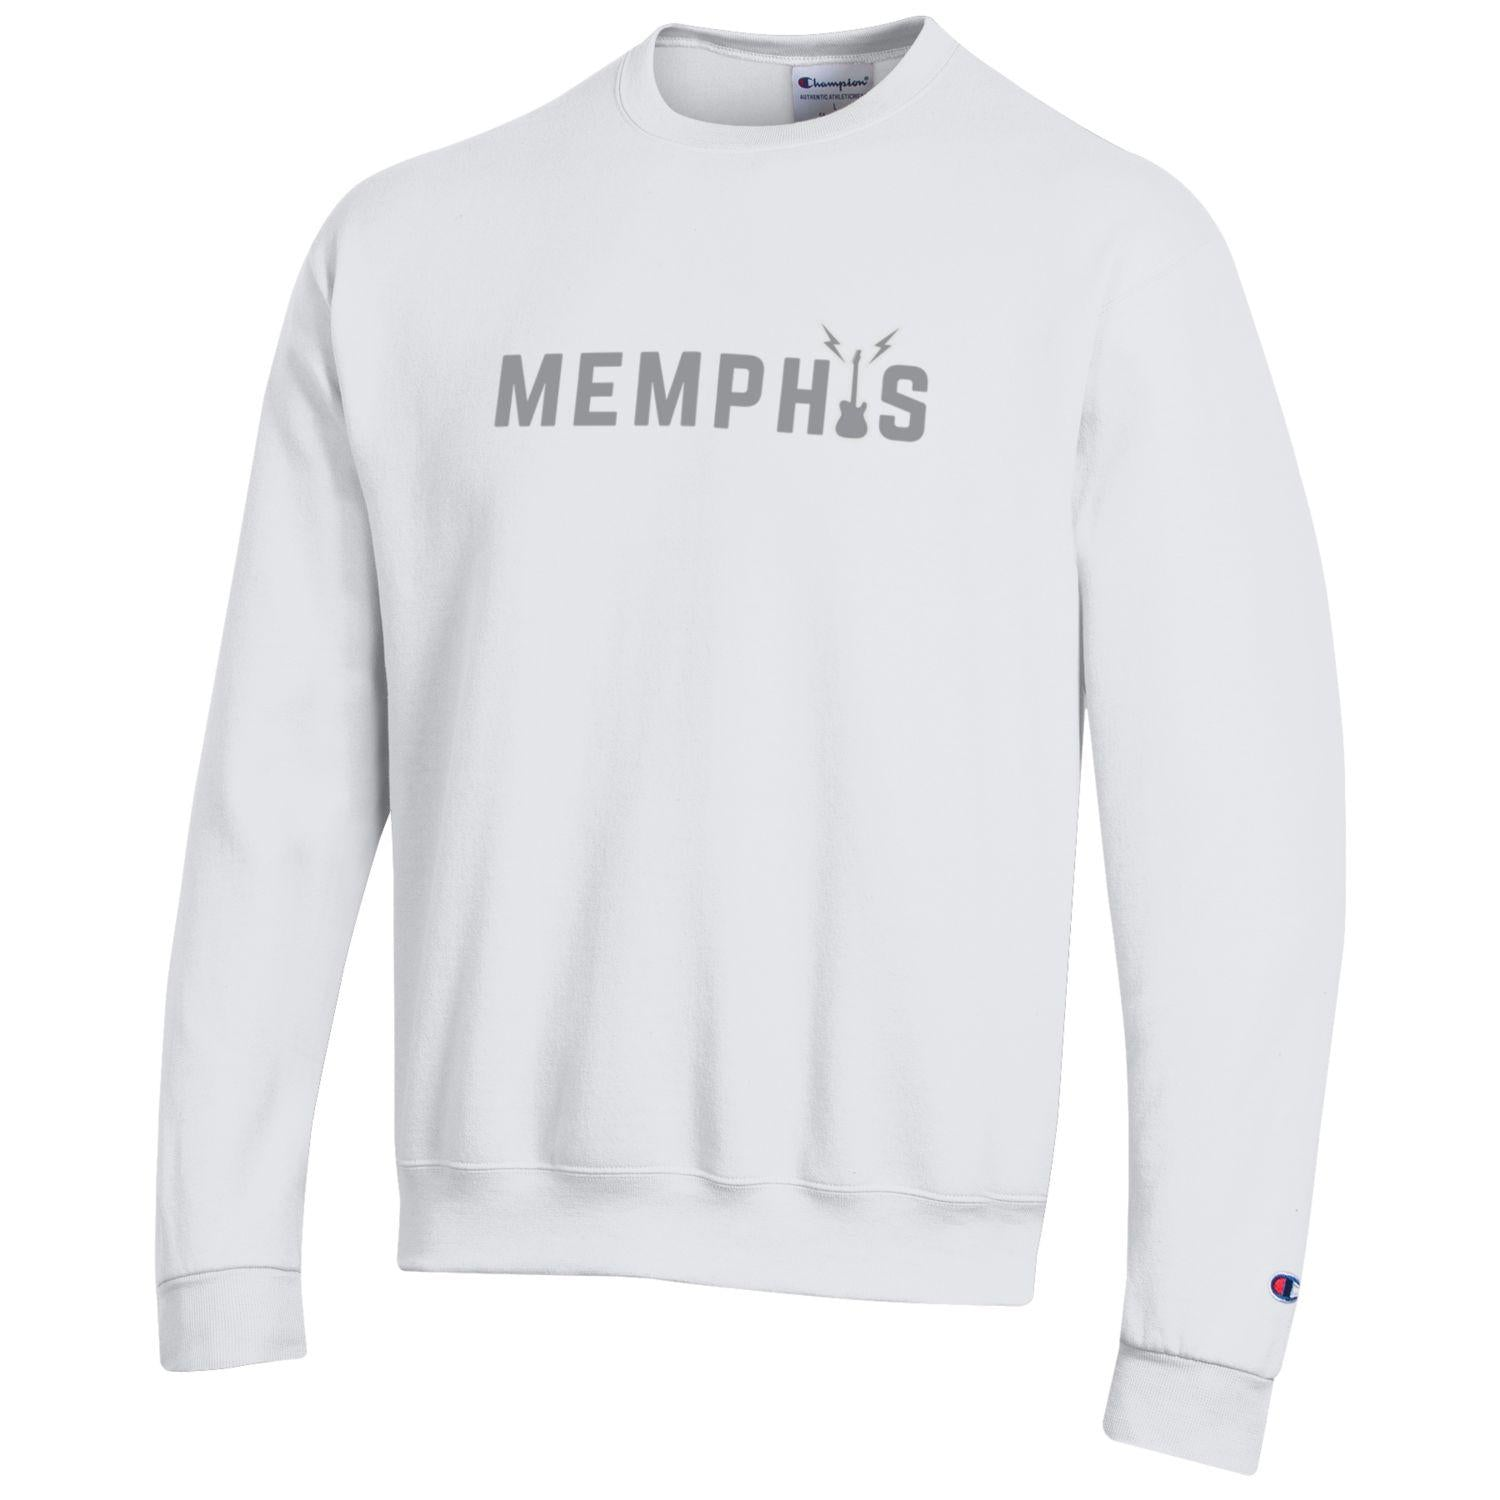 Memphis Embroidered Sweatshirt- White